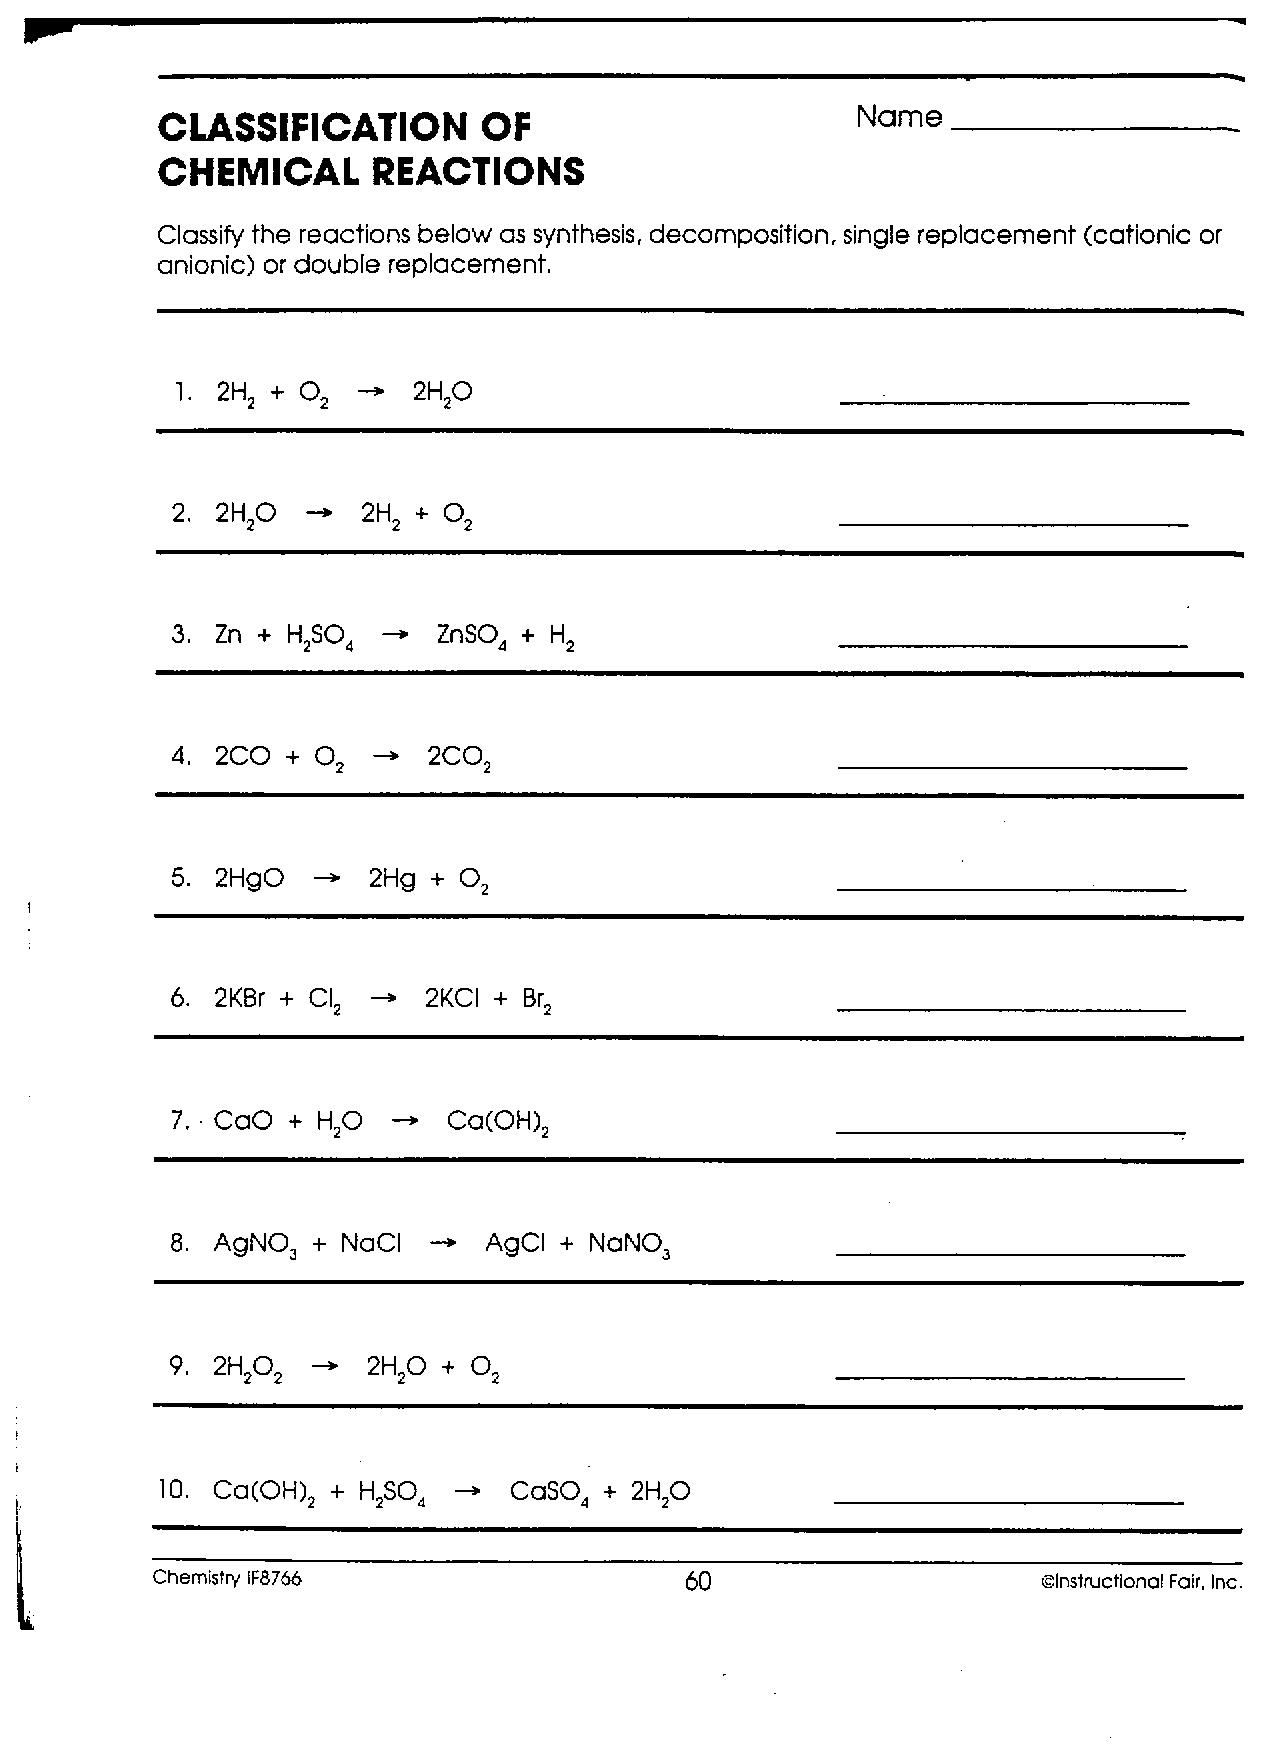 Worksheets Virtual Lab The Cell Cycle And Cancer Worksheet Answers virtual cell worksheet answers free worksheets library download lab the cycle and cancer